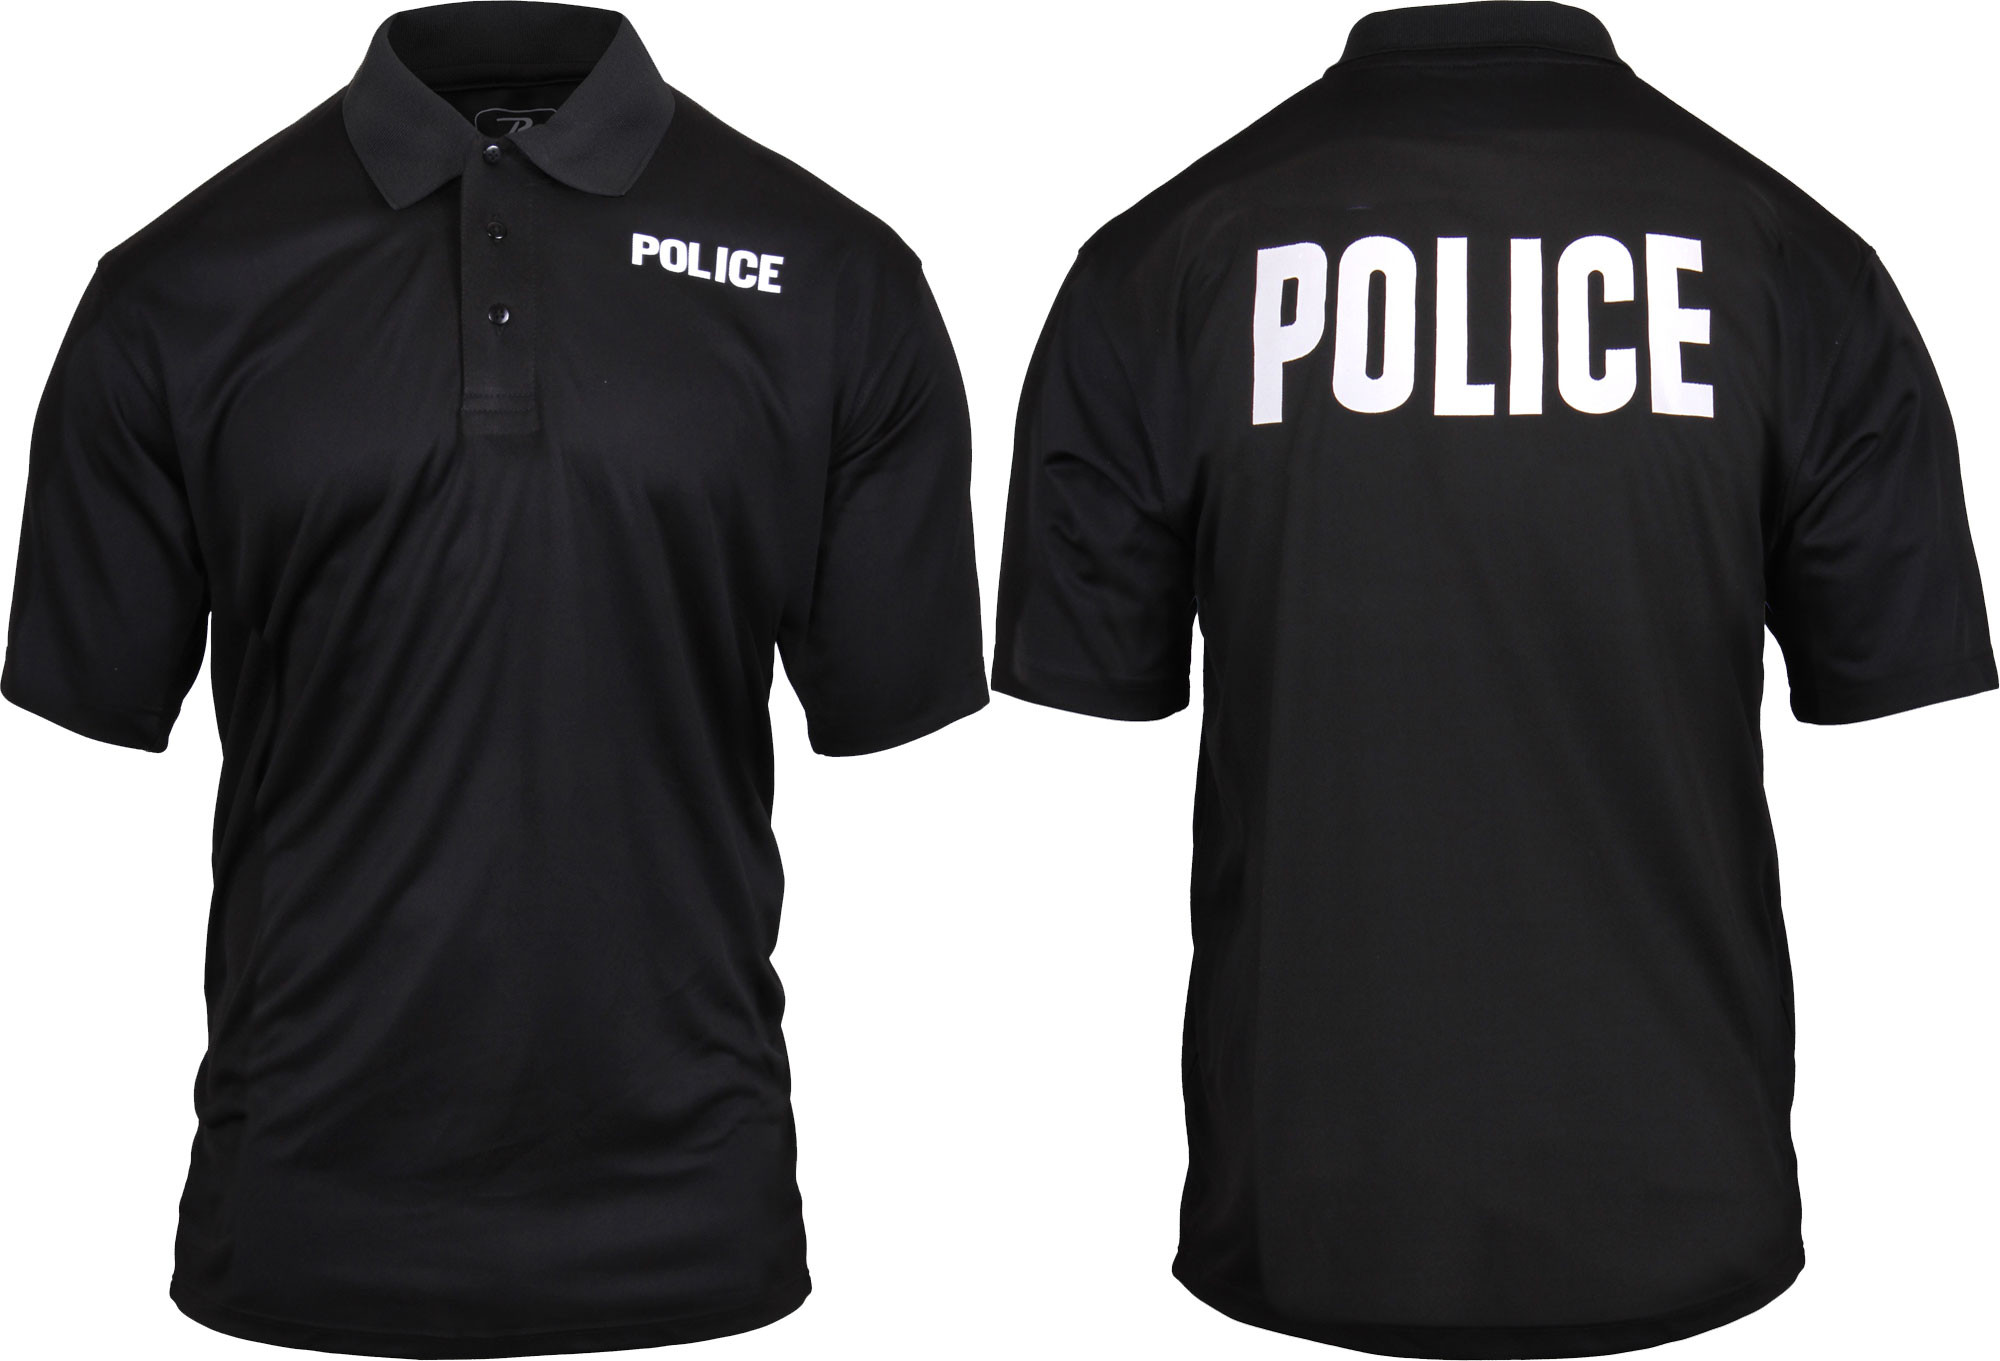 More Views. Black Moisture Wicking POLICE Polo Golf Shirt ... 262cef54475